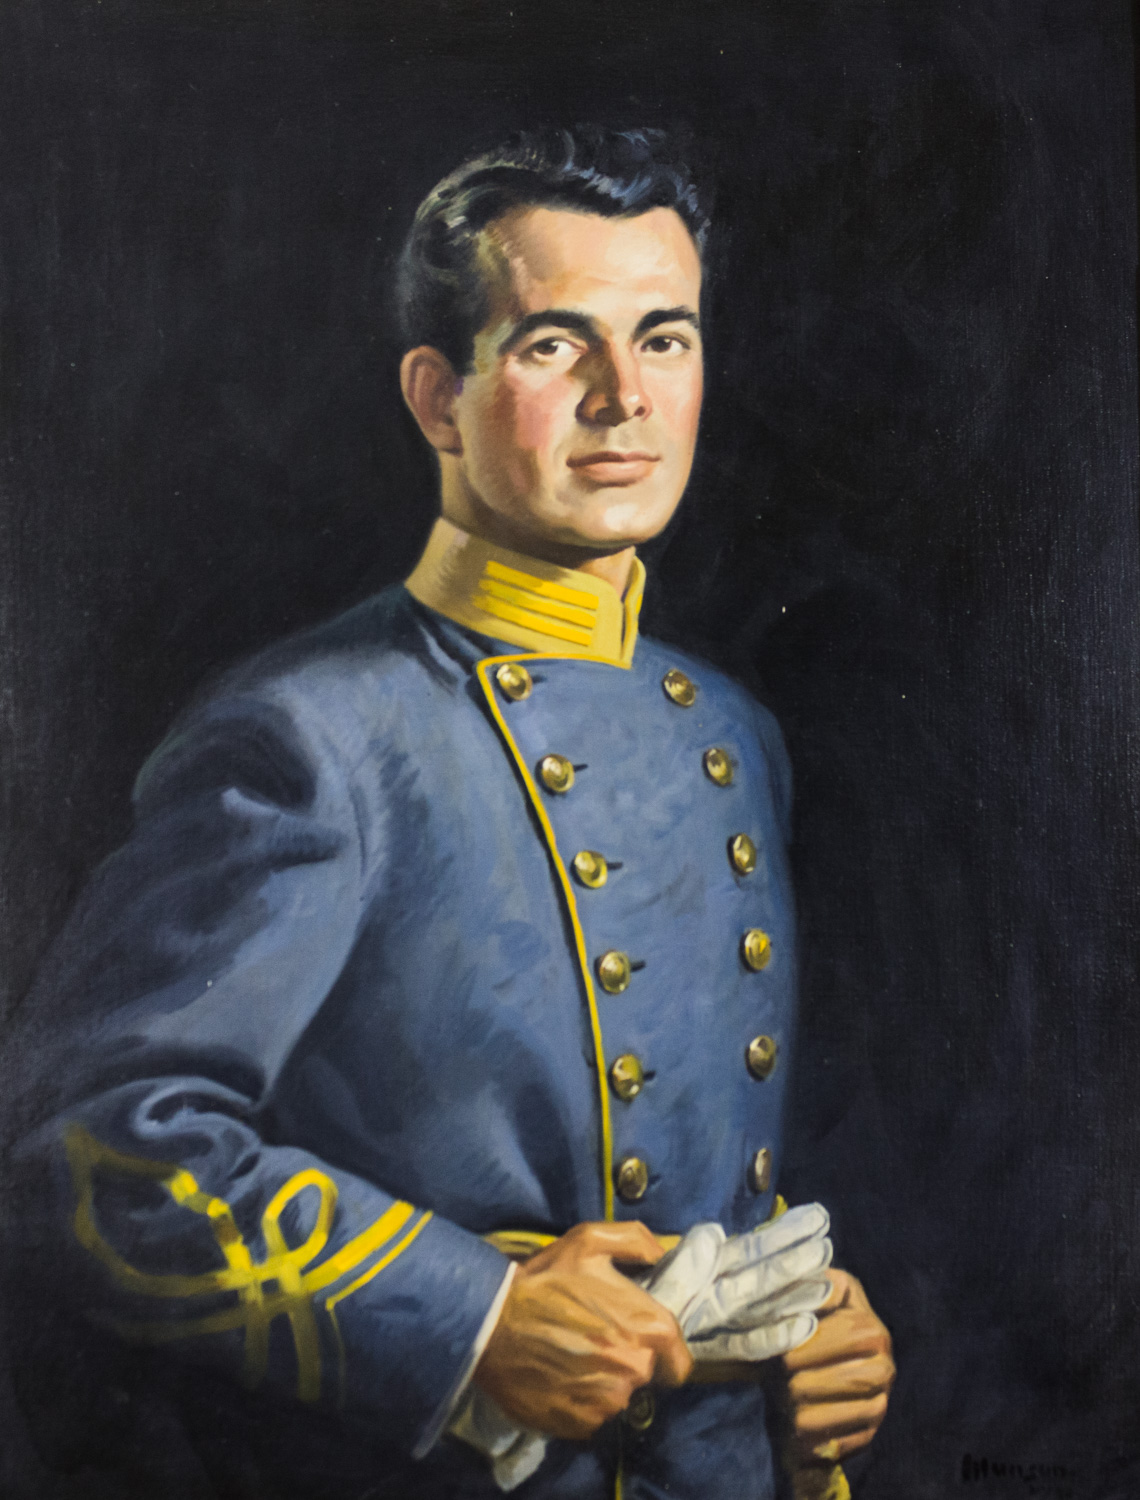 Lyman Warren Clardy, II by Ruth Munson, Oil on Canvas, Donation